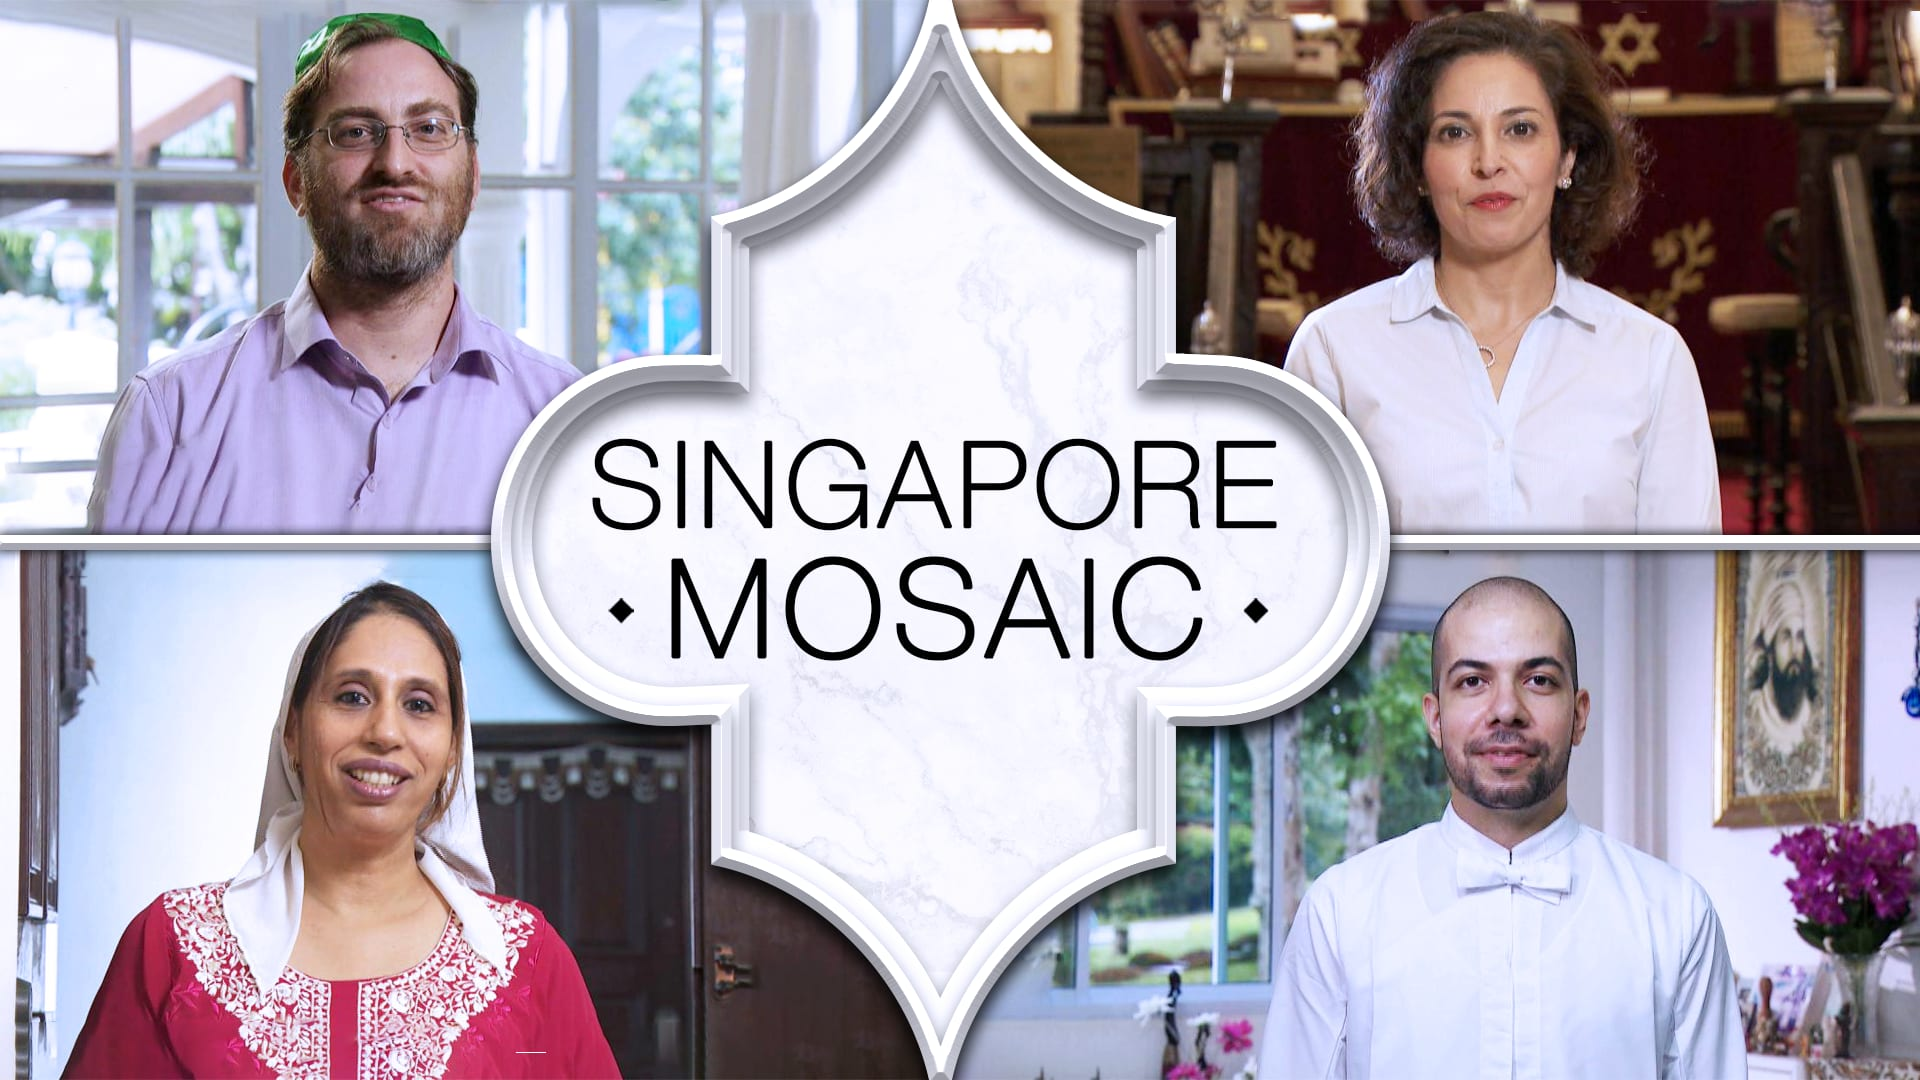 Singapore Mosaic Episode 1 Trailer